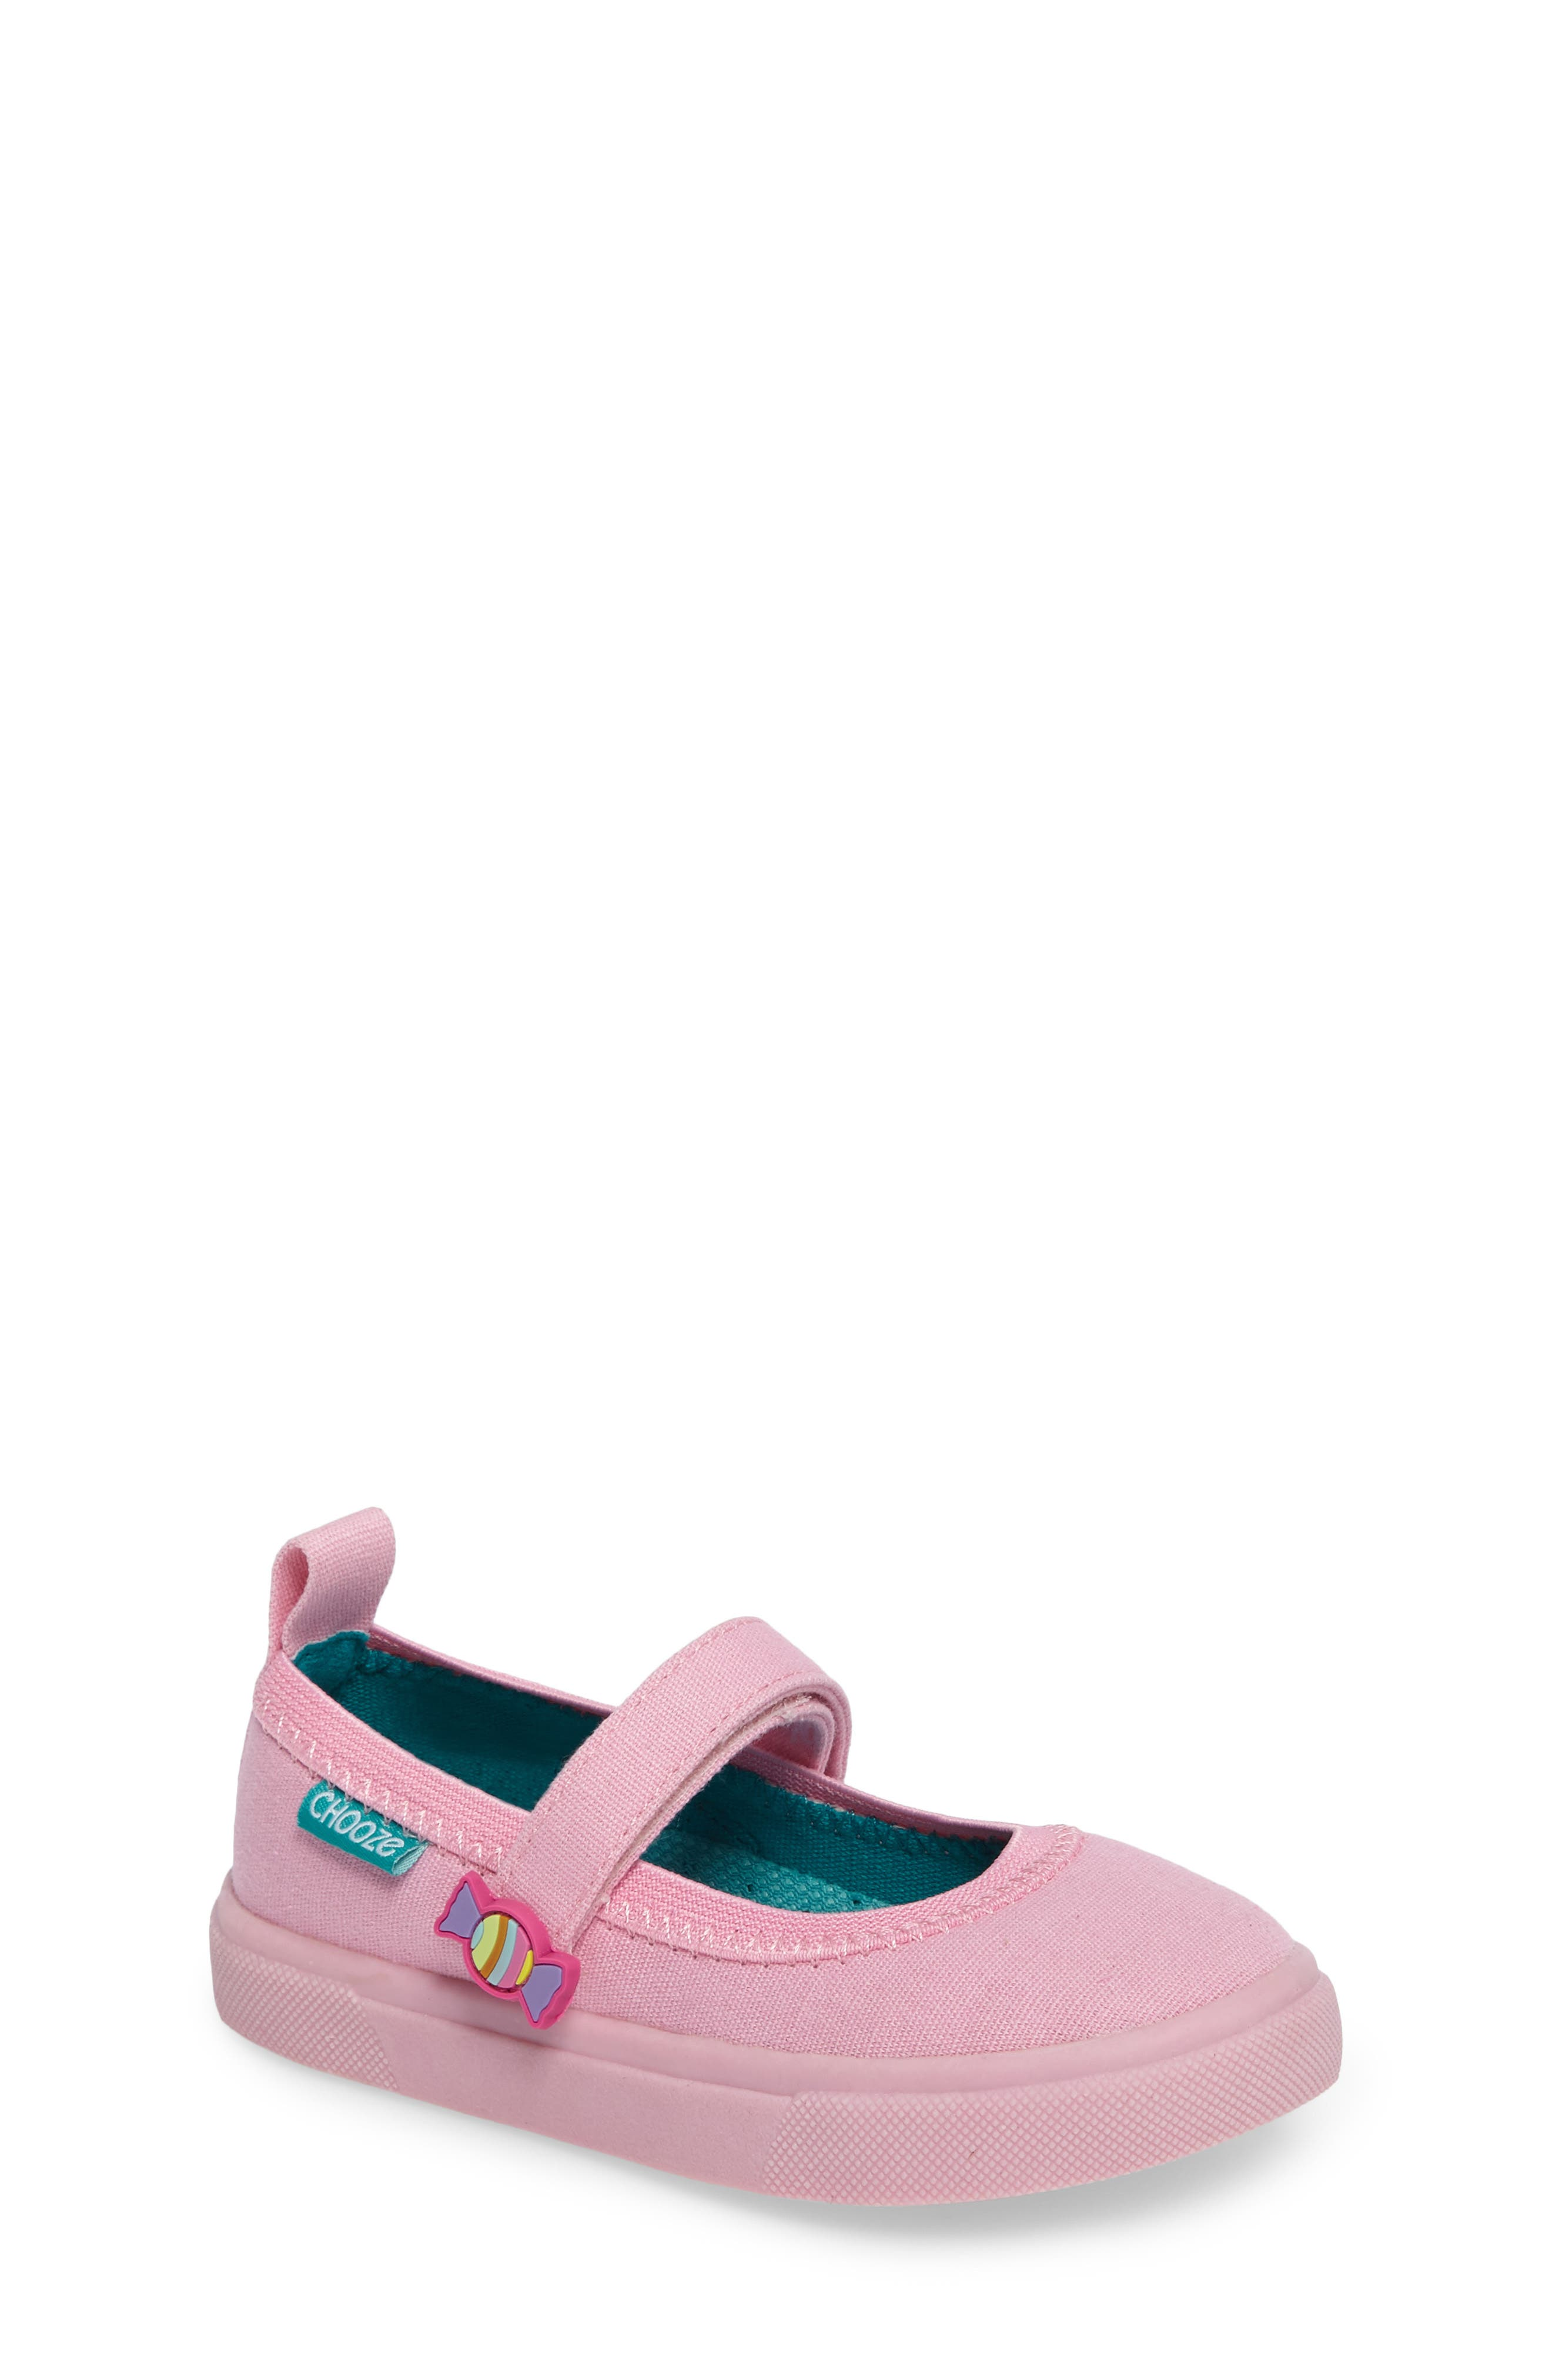 Main Image - CHOOZE Skip Mary Jane Sneaker (Toddler)